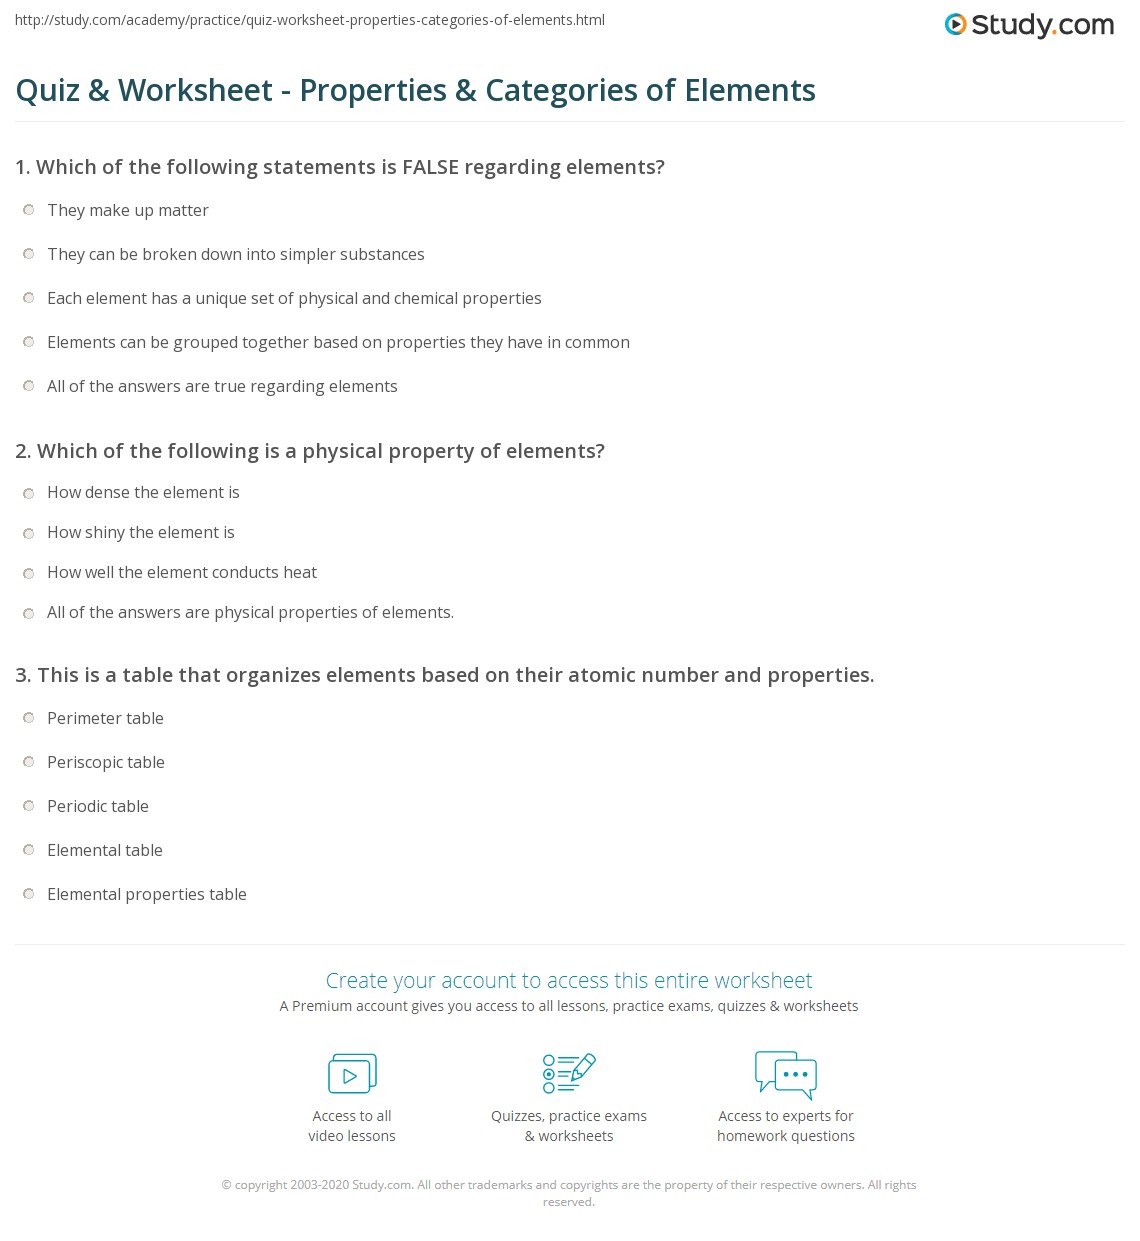 Worksheets Metals Nonmetals Metalloids Worksheet quiz worksheet properties categories of elements study com print physical chemical metals nonmetals metalloids worksheet